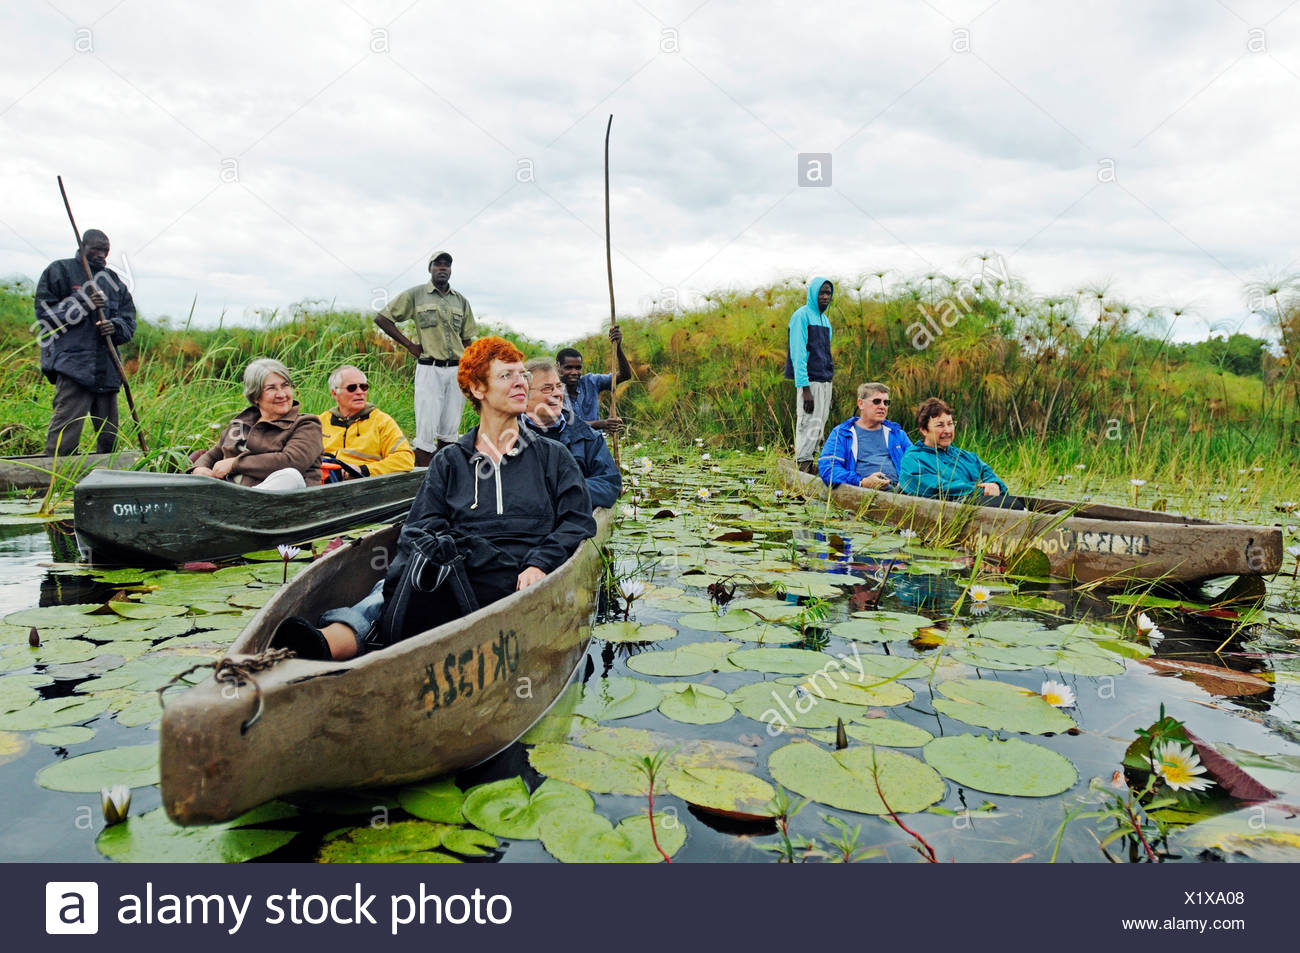 Guides and boatmen with poles in mokoro or makoro canoes, tourists in the back of the boats, Okavango Delta, Botswana, Africa - Stock Image